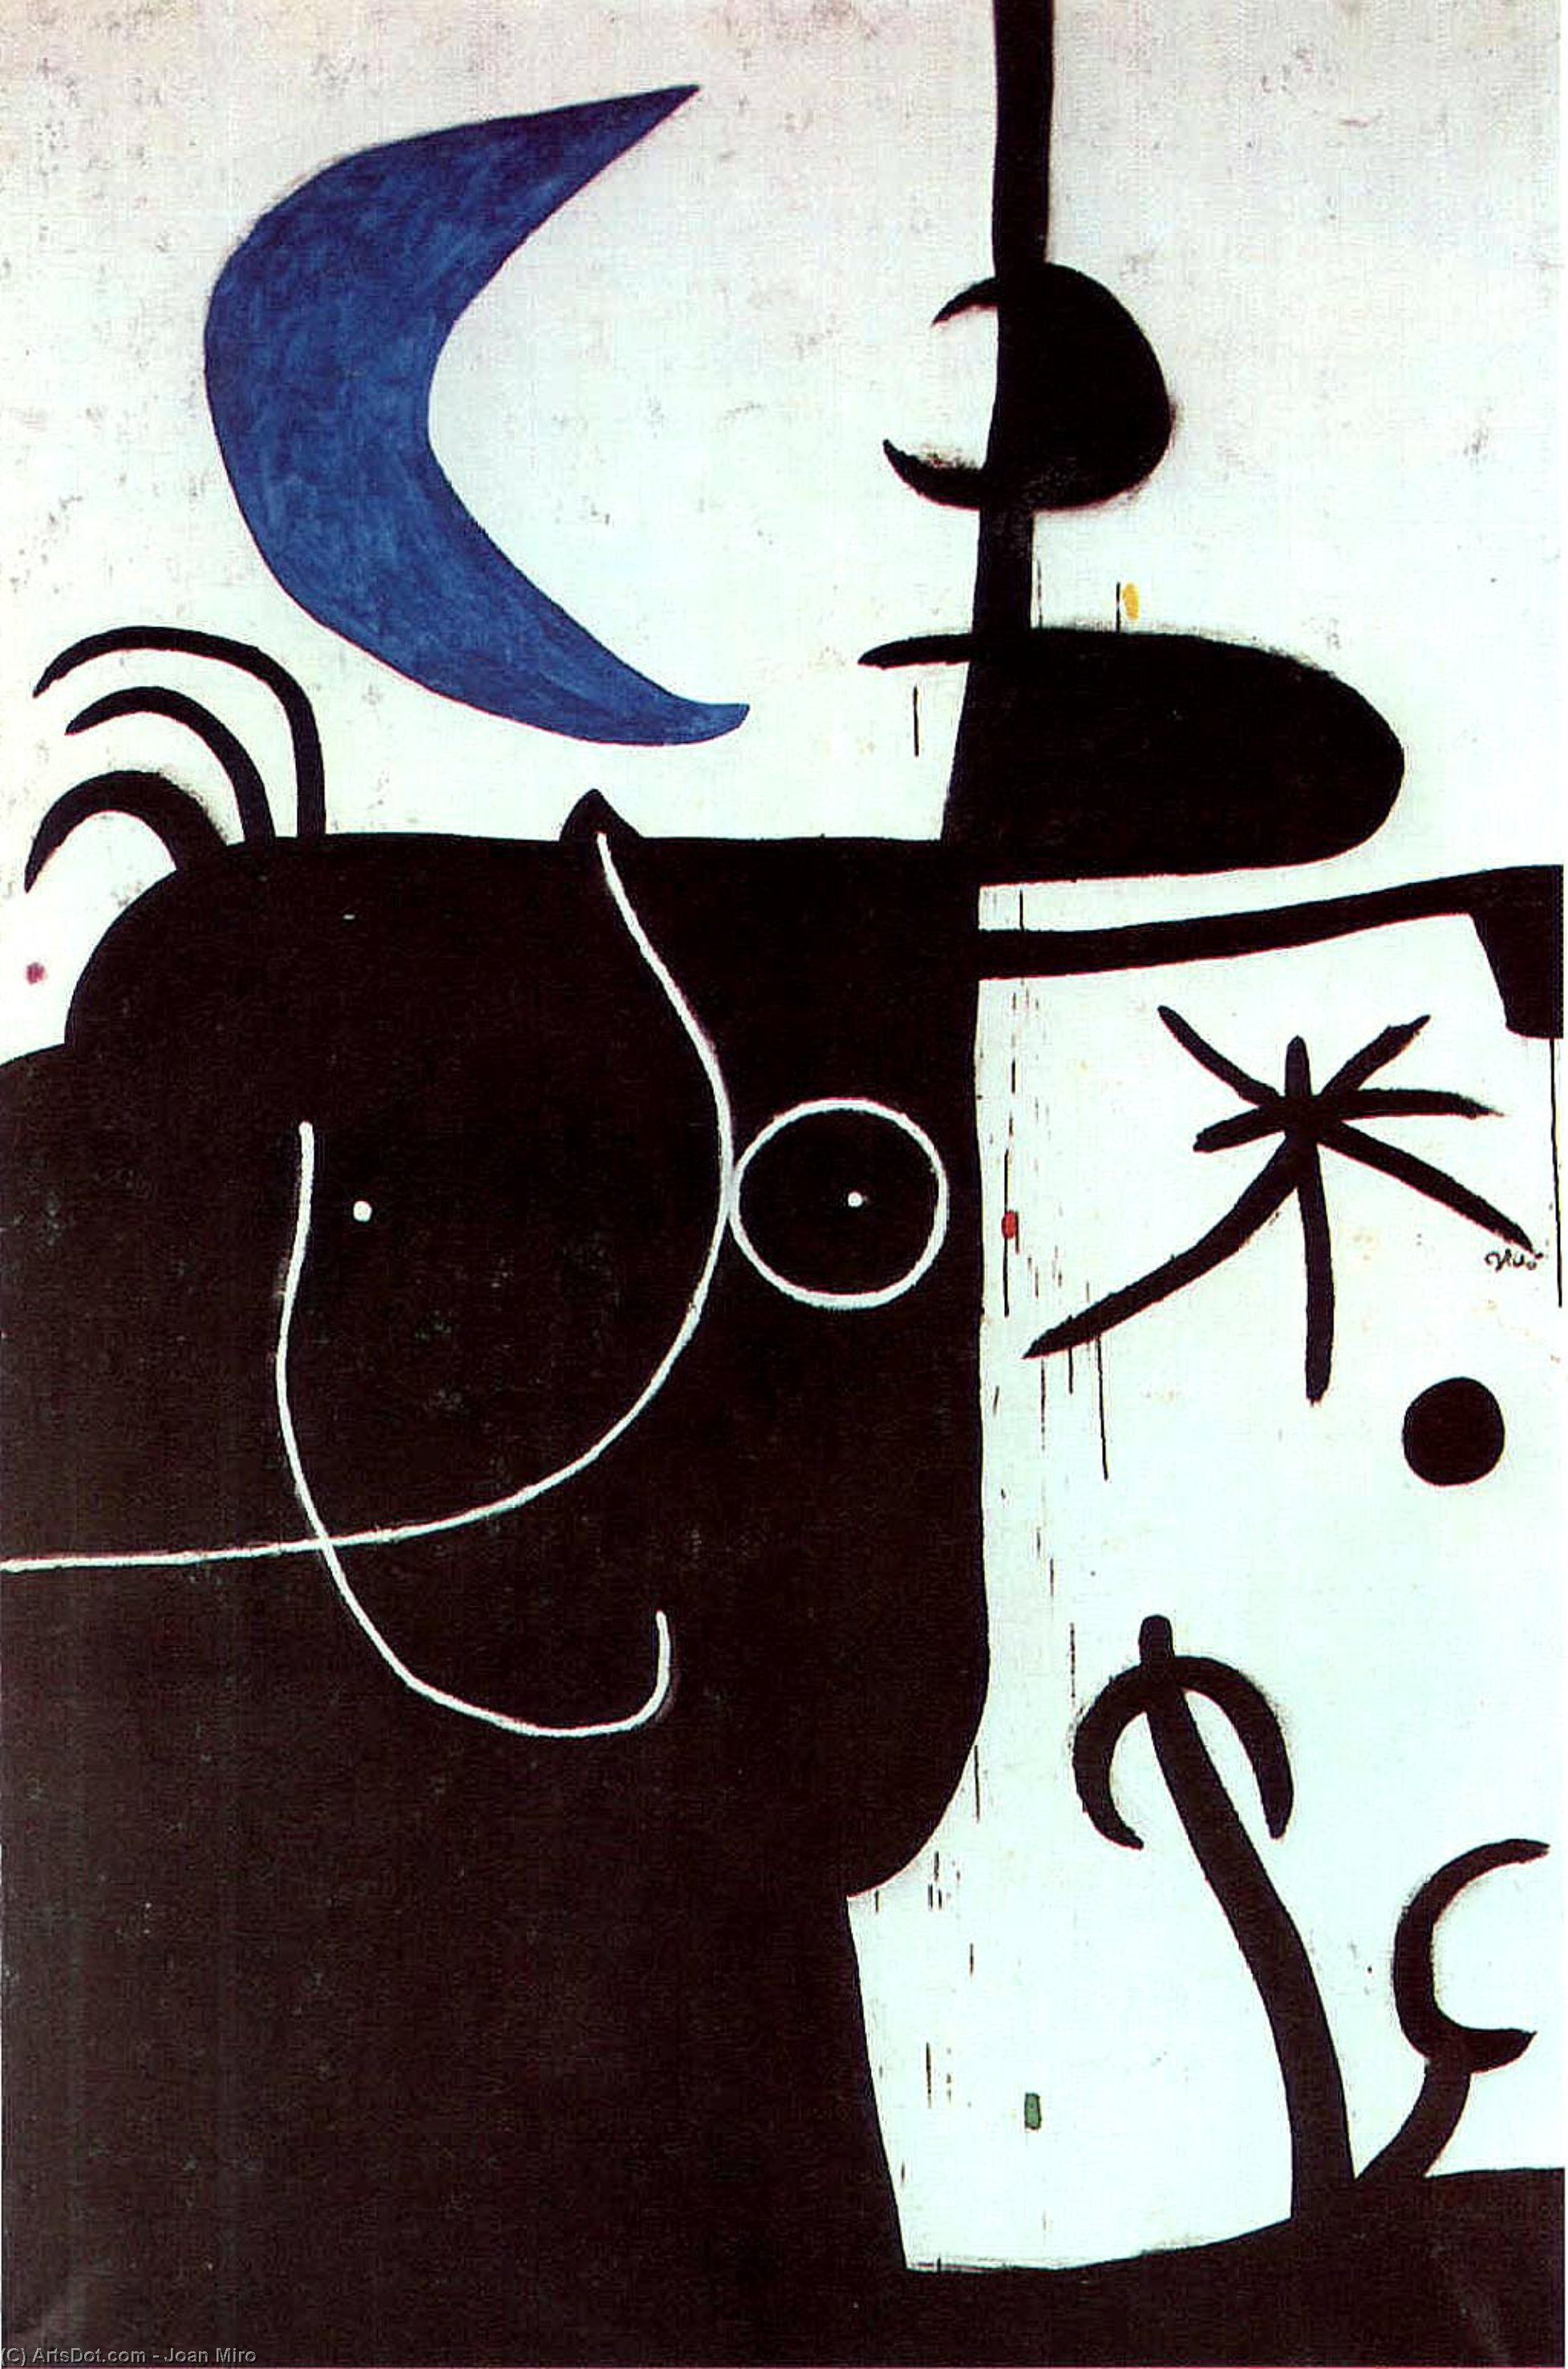 Woman before the luna, 1974 by Joan Miro (1893-1937, Spain)